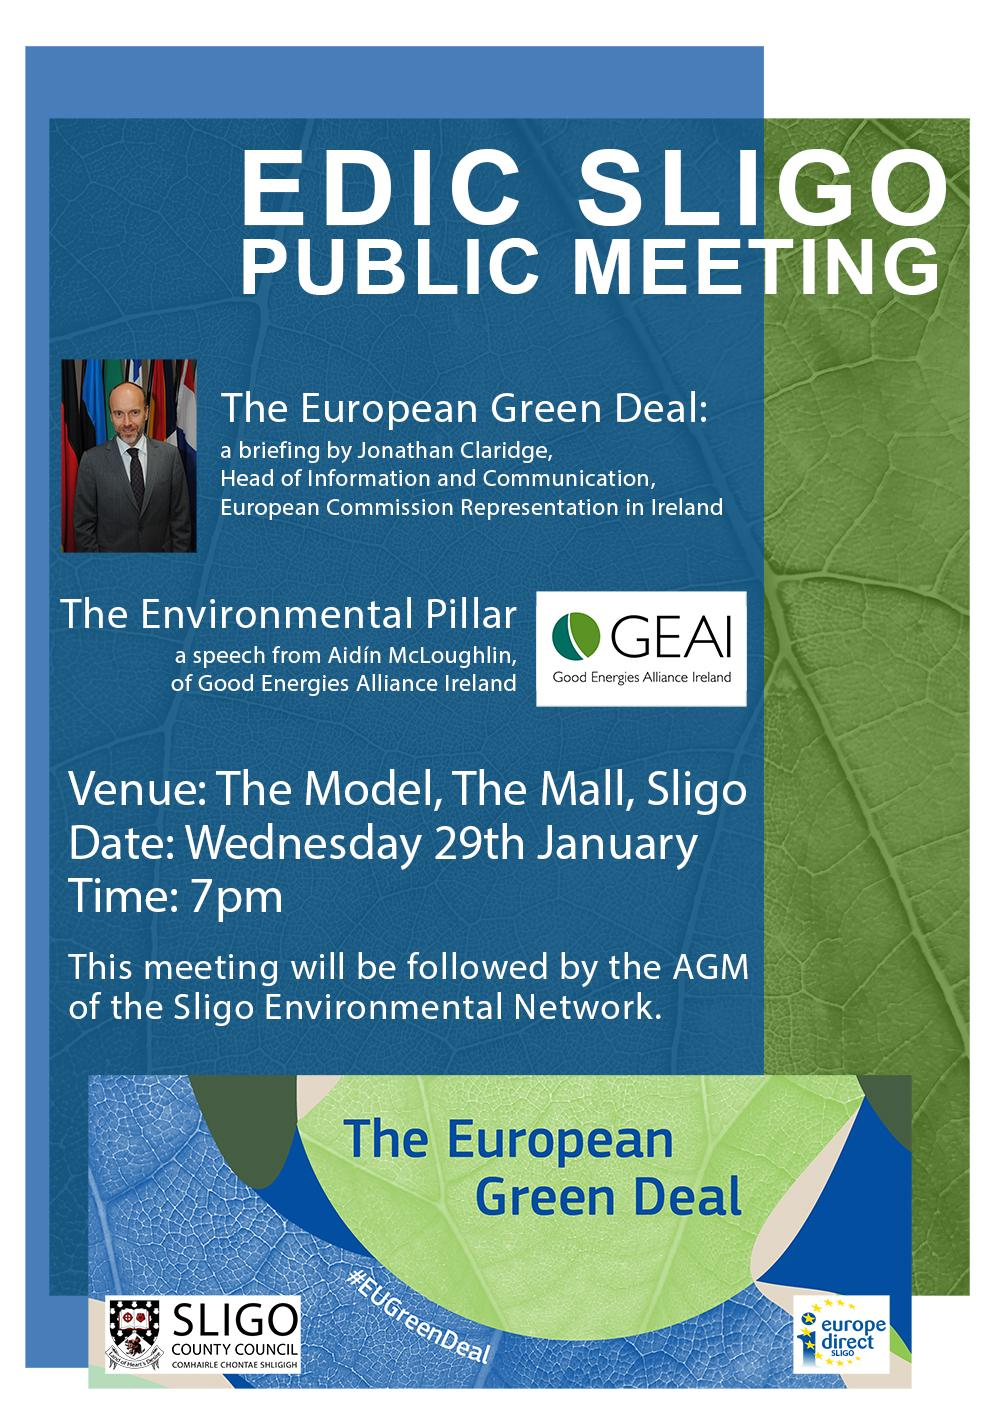 EDIC Sligo Poster for European Green Deal Briefing January 29th 2020